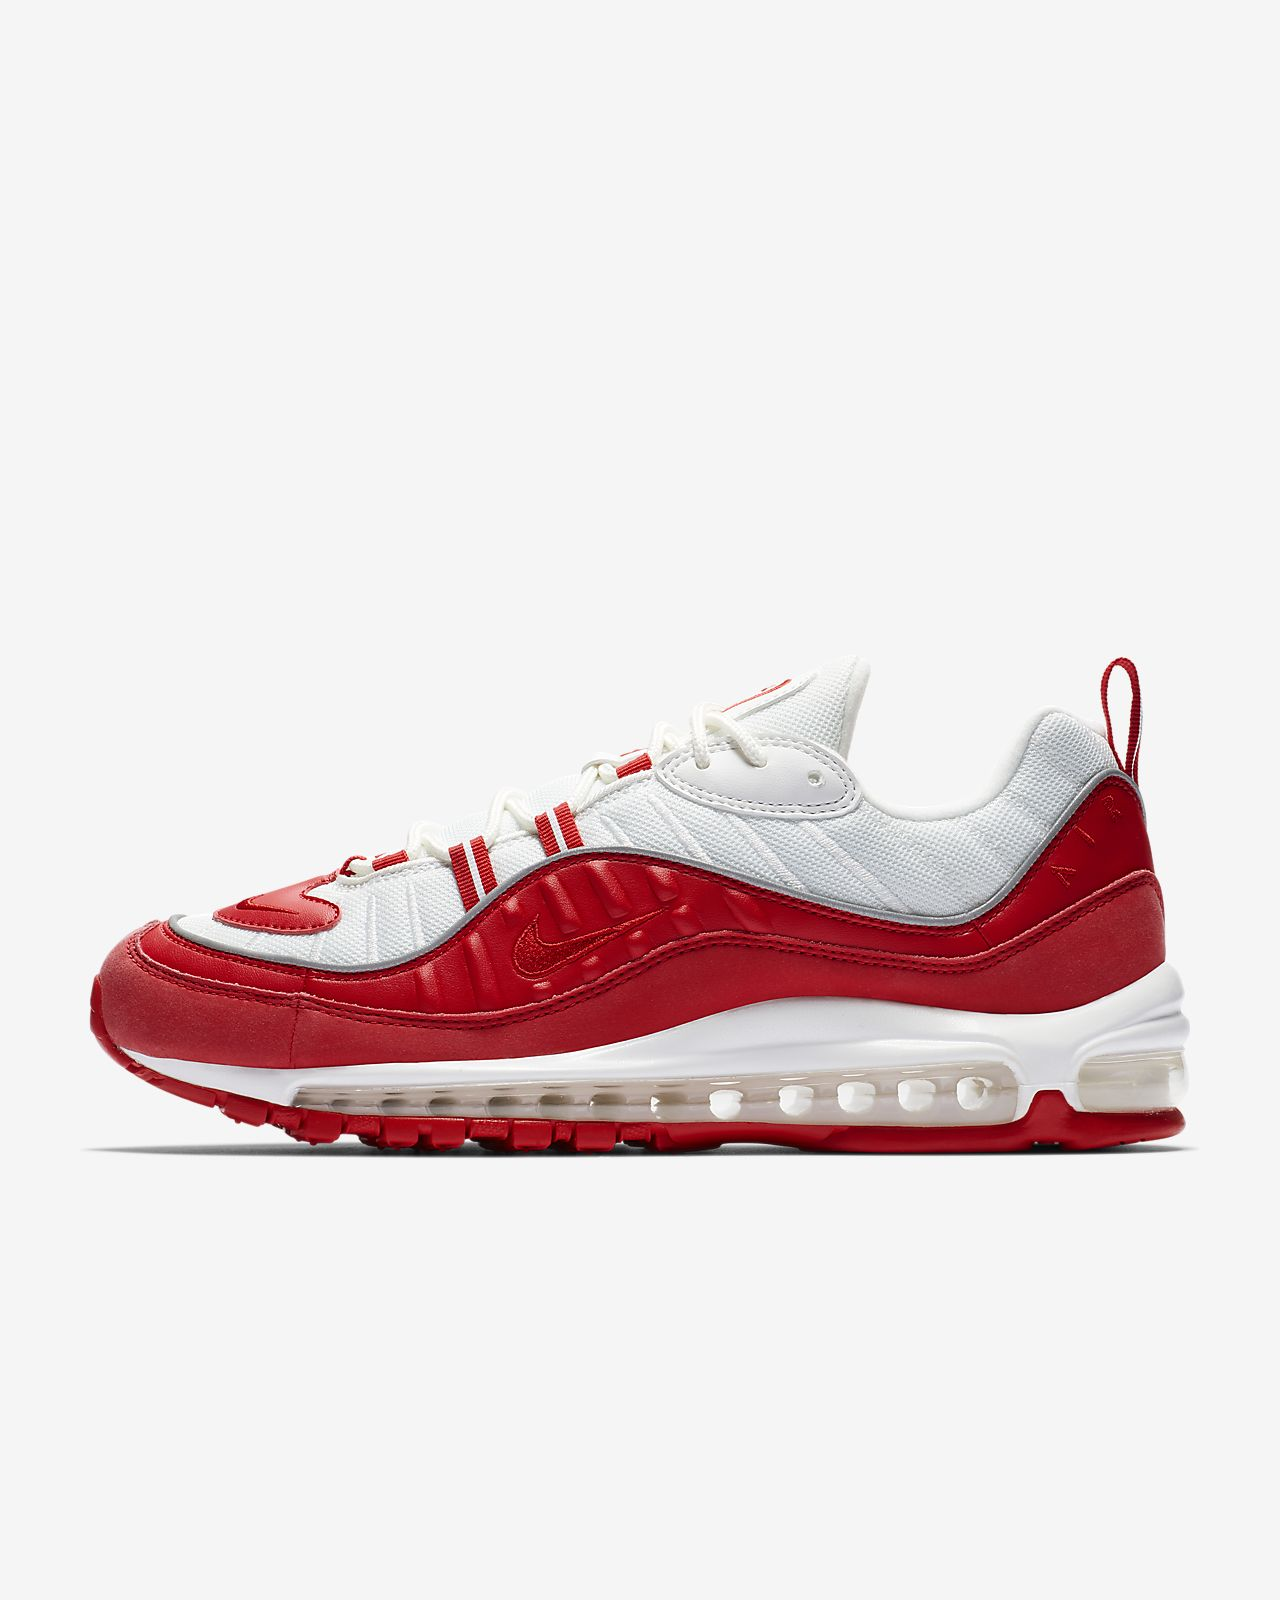 99cf1ee5f57 Nike Air Max 98 Men s Shoe. Nike.com ZA